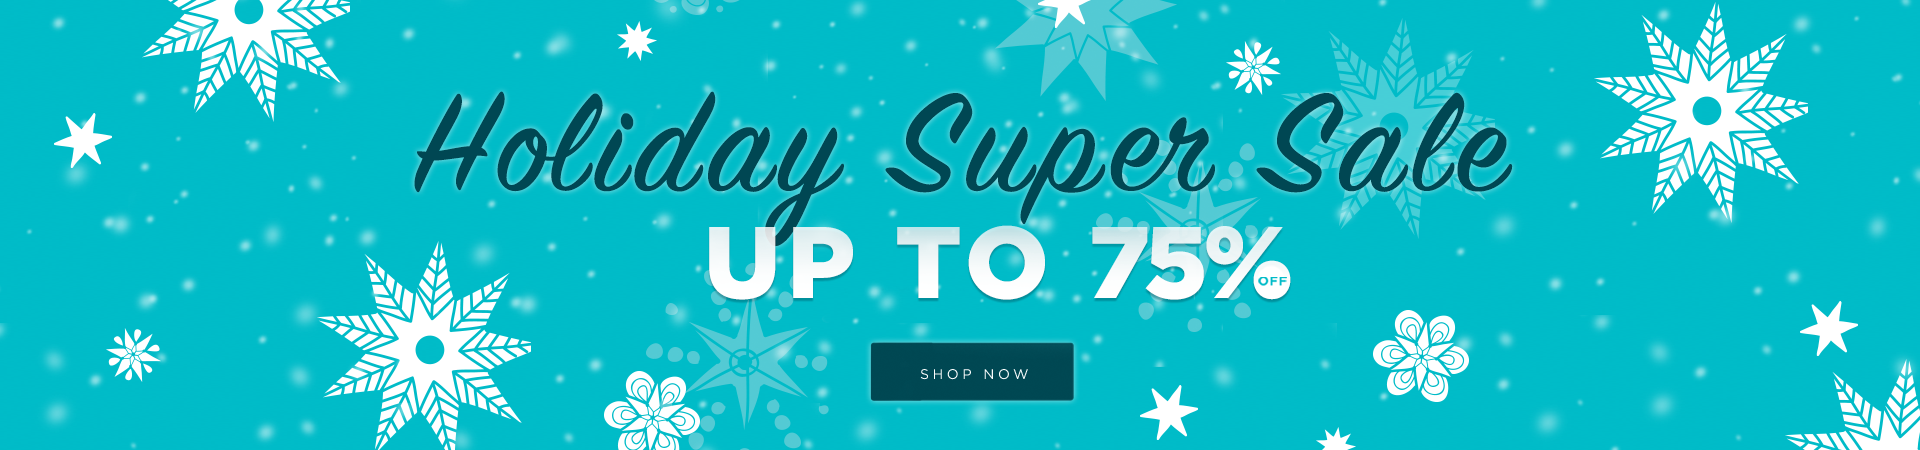 Holiday Supersale